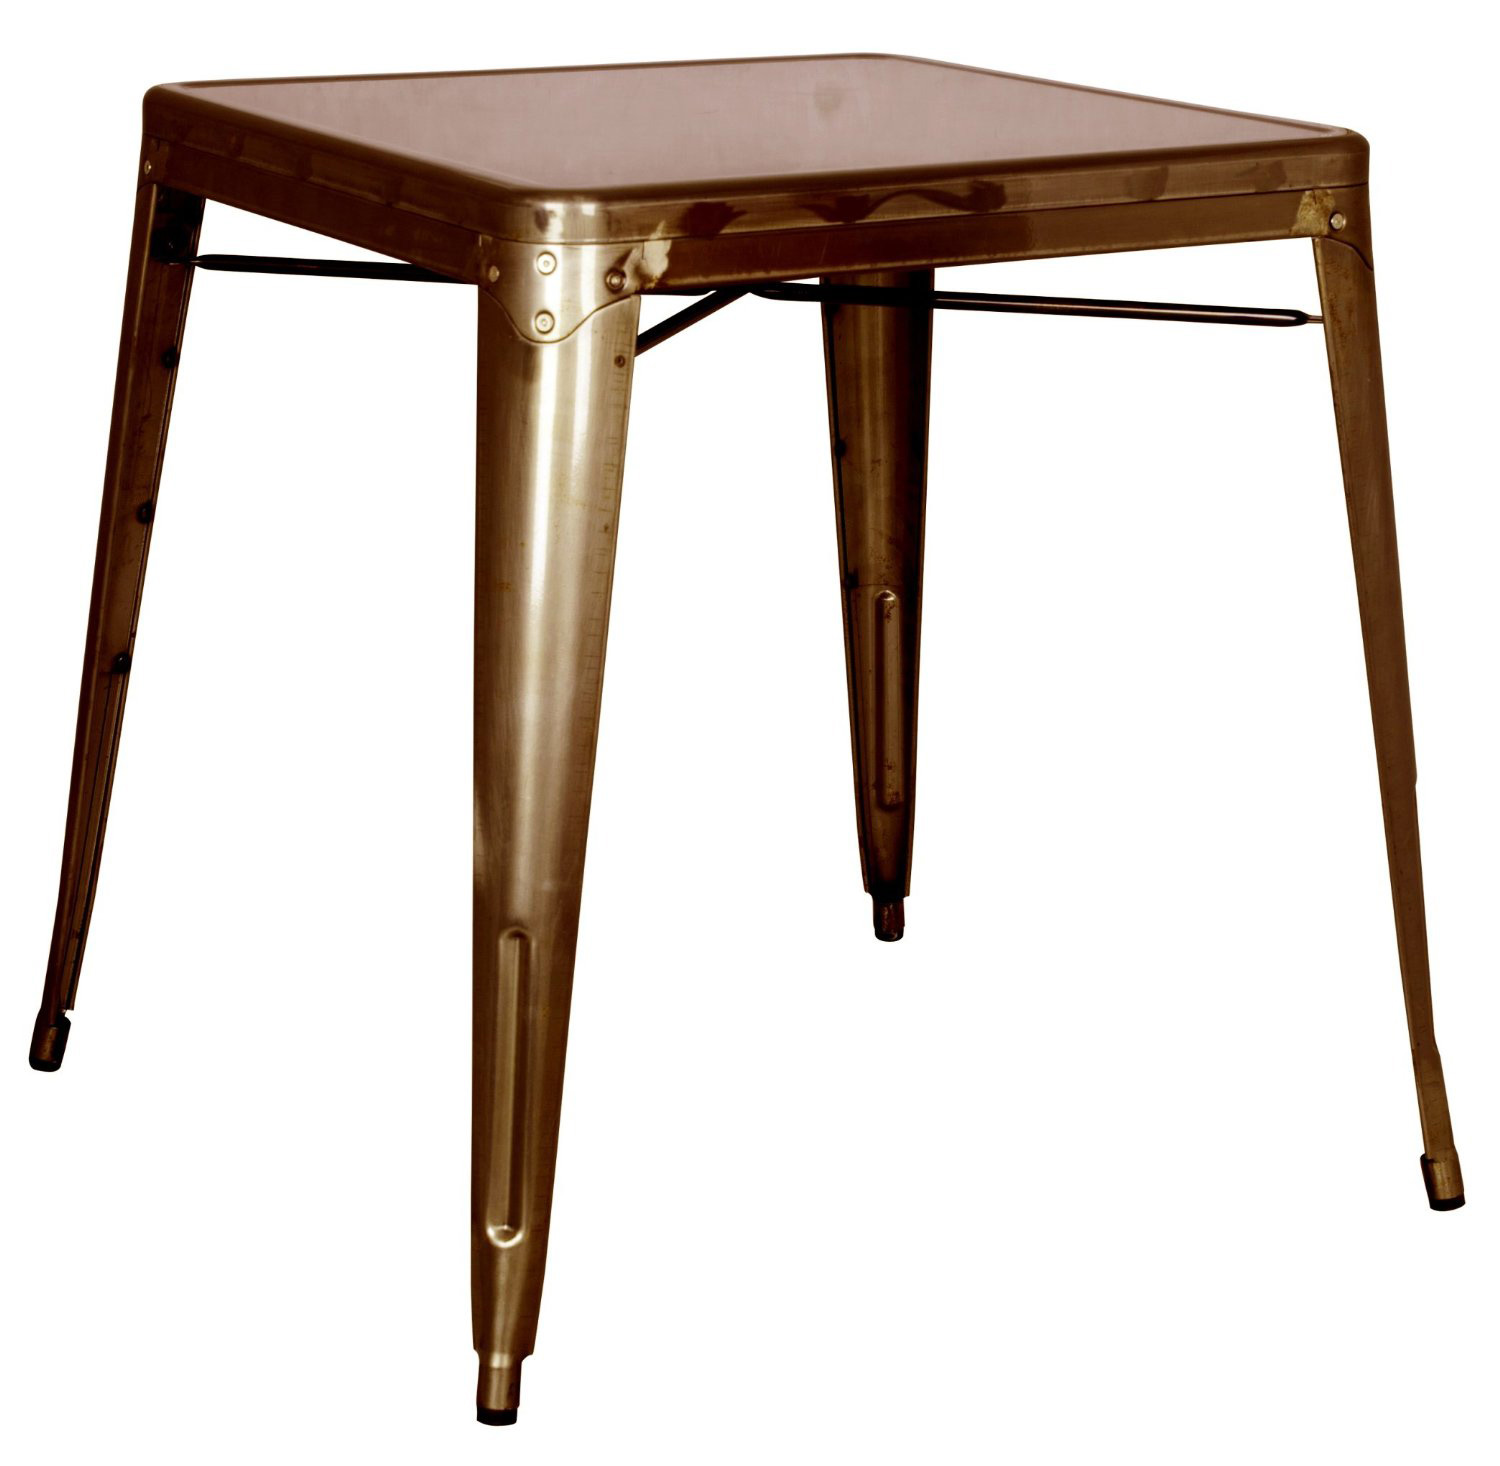 Chintaly Imports 8029 Galvanized Steel Dining Table - Red Copper